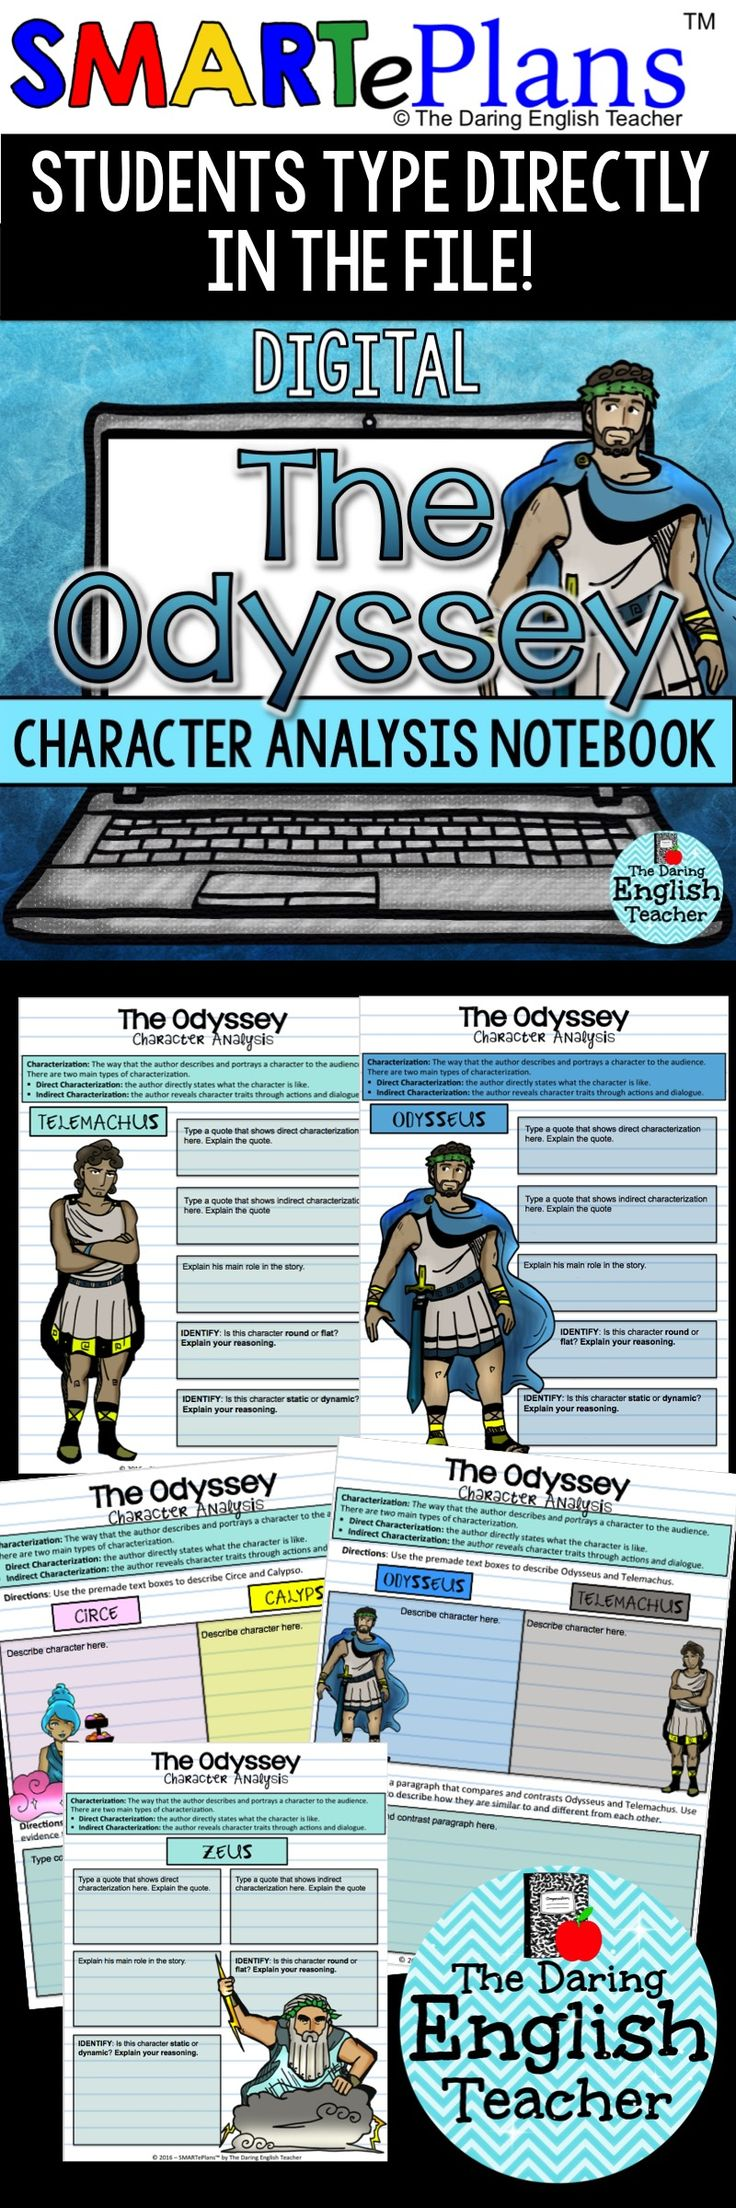 an analysis of the character of telemachus in the odyssey